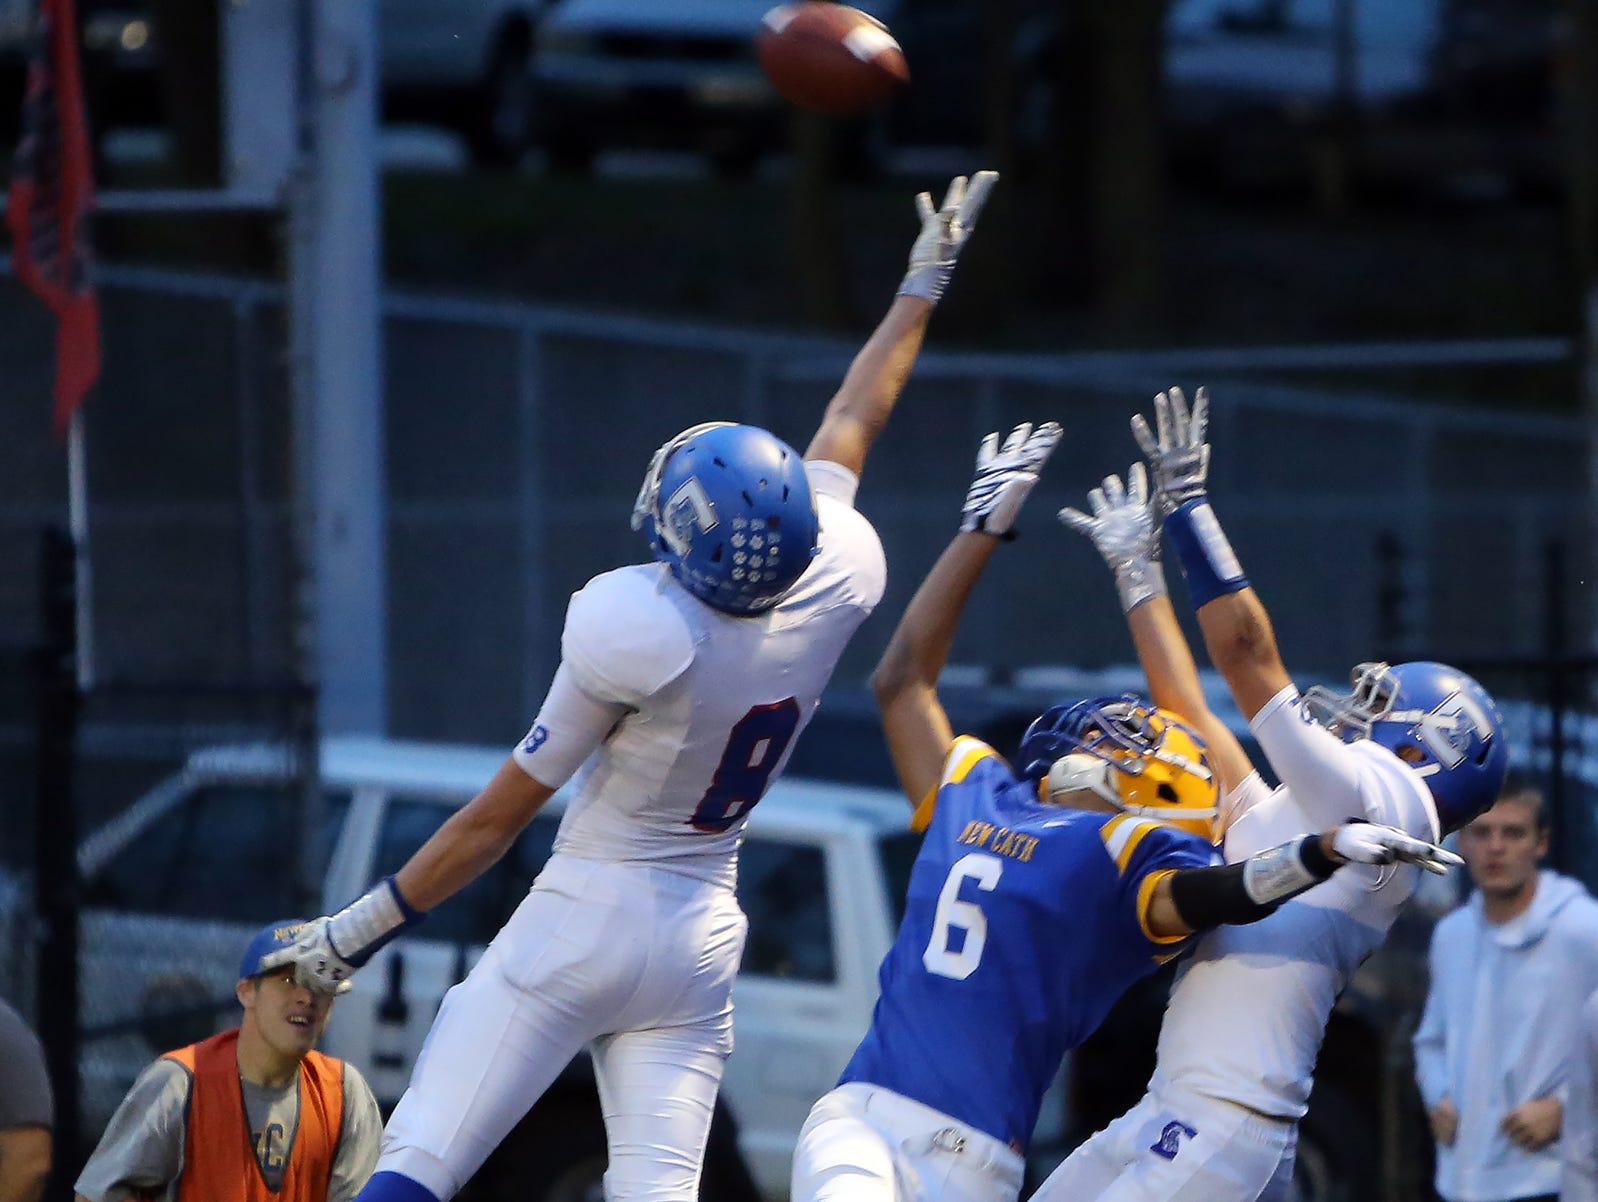 Wide receiver Trent Wrobleski goes up high but can't come down with the pass in the end zone for the Thoroughbreds.